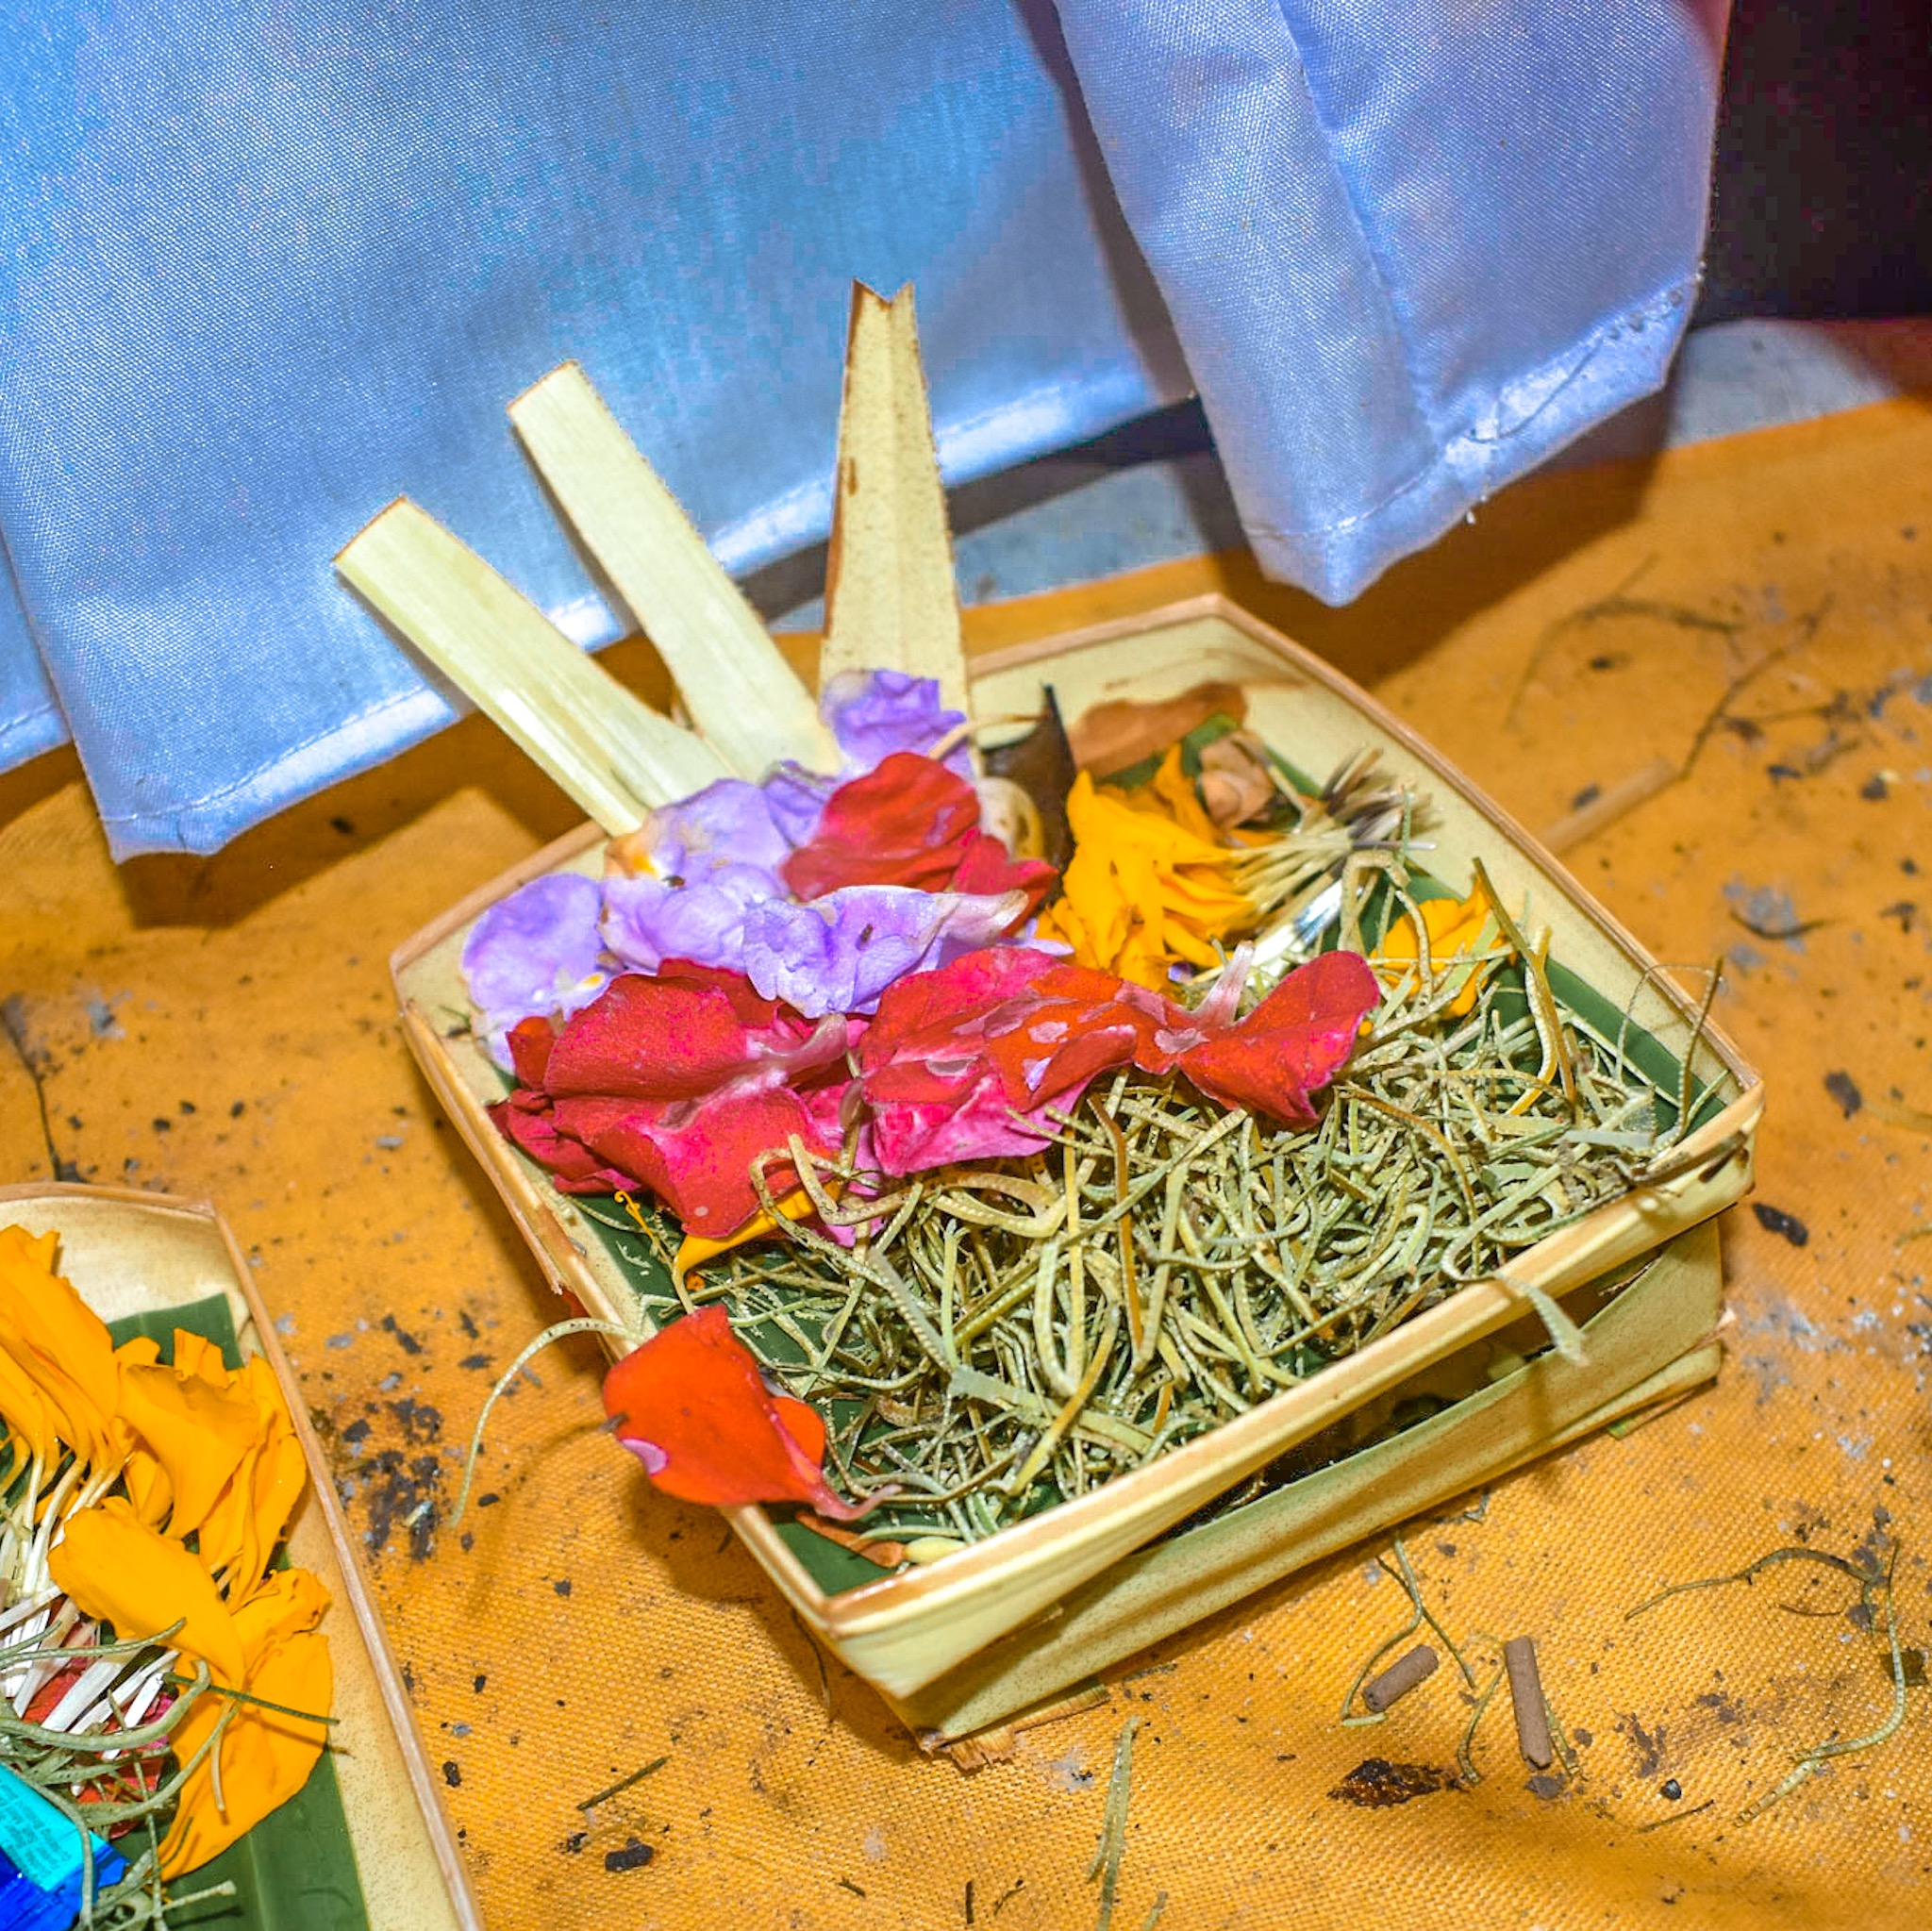 Offerings for Galungan Day at the Elephant Cave Temple in Bali